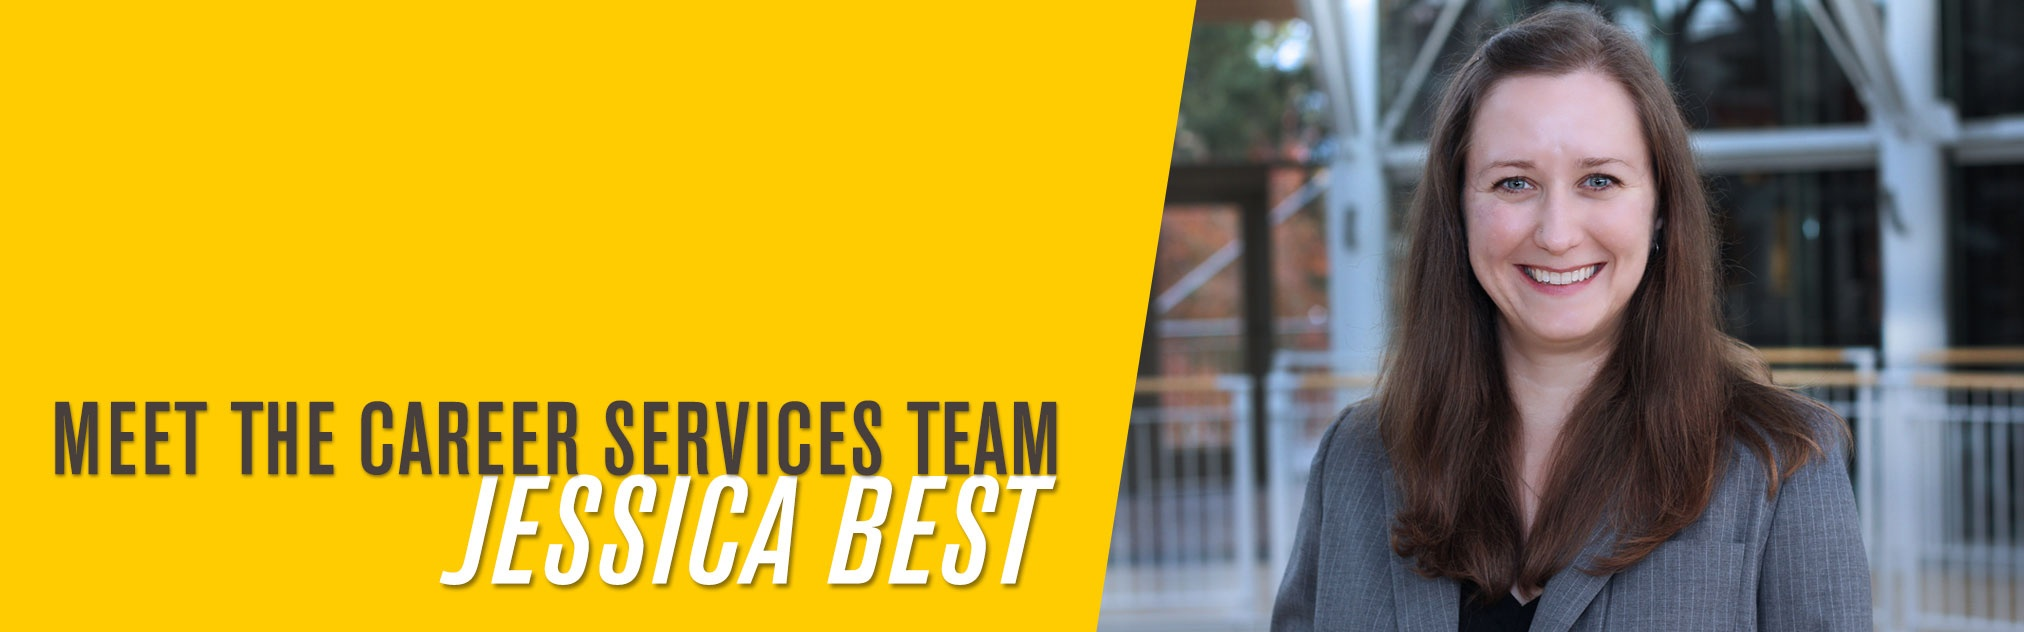 Get to Know Career Services: Jessica Best